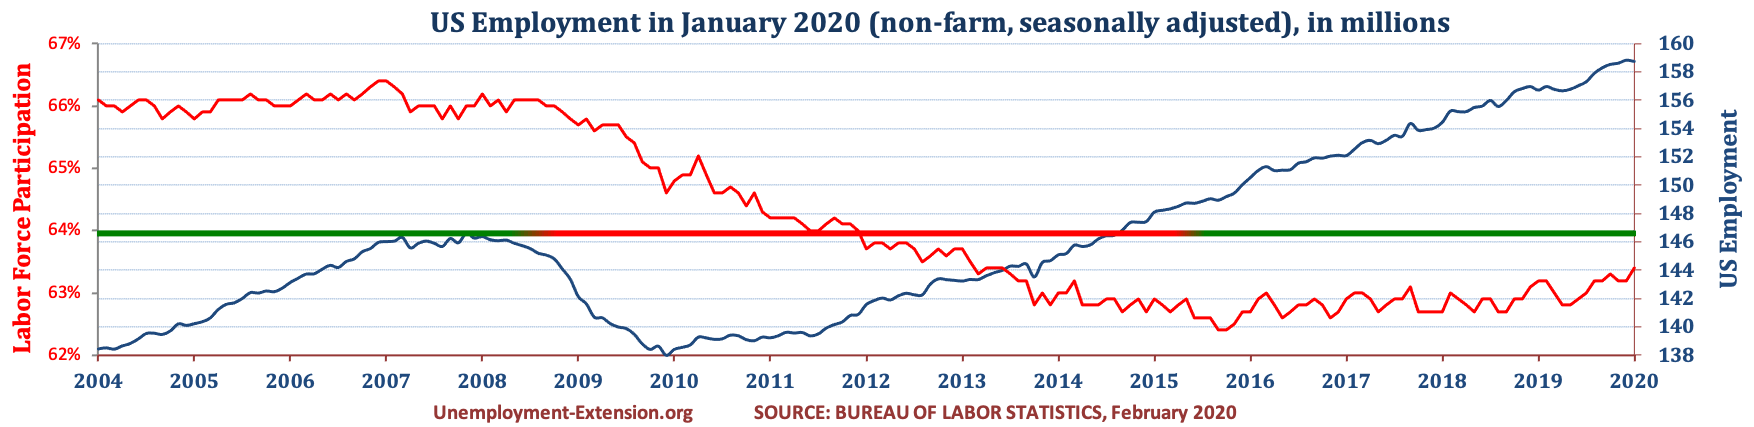 Total US Employment (non-farm, seasonally adjusted) in January of 2020. US economy has lost approximately 10 million jobs in comparison to pre-resession level.